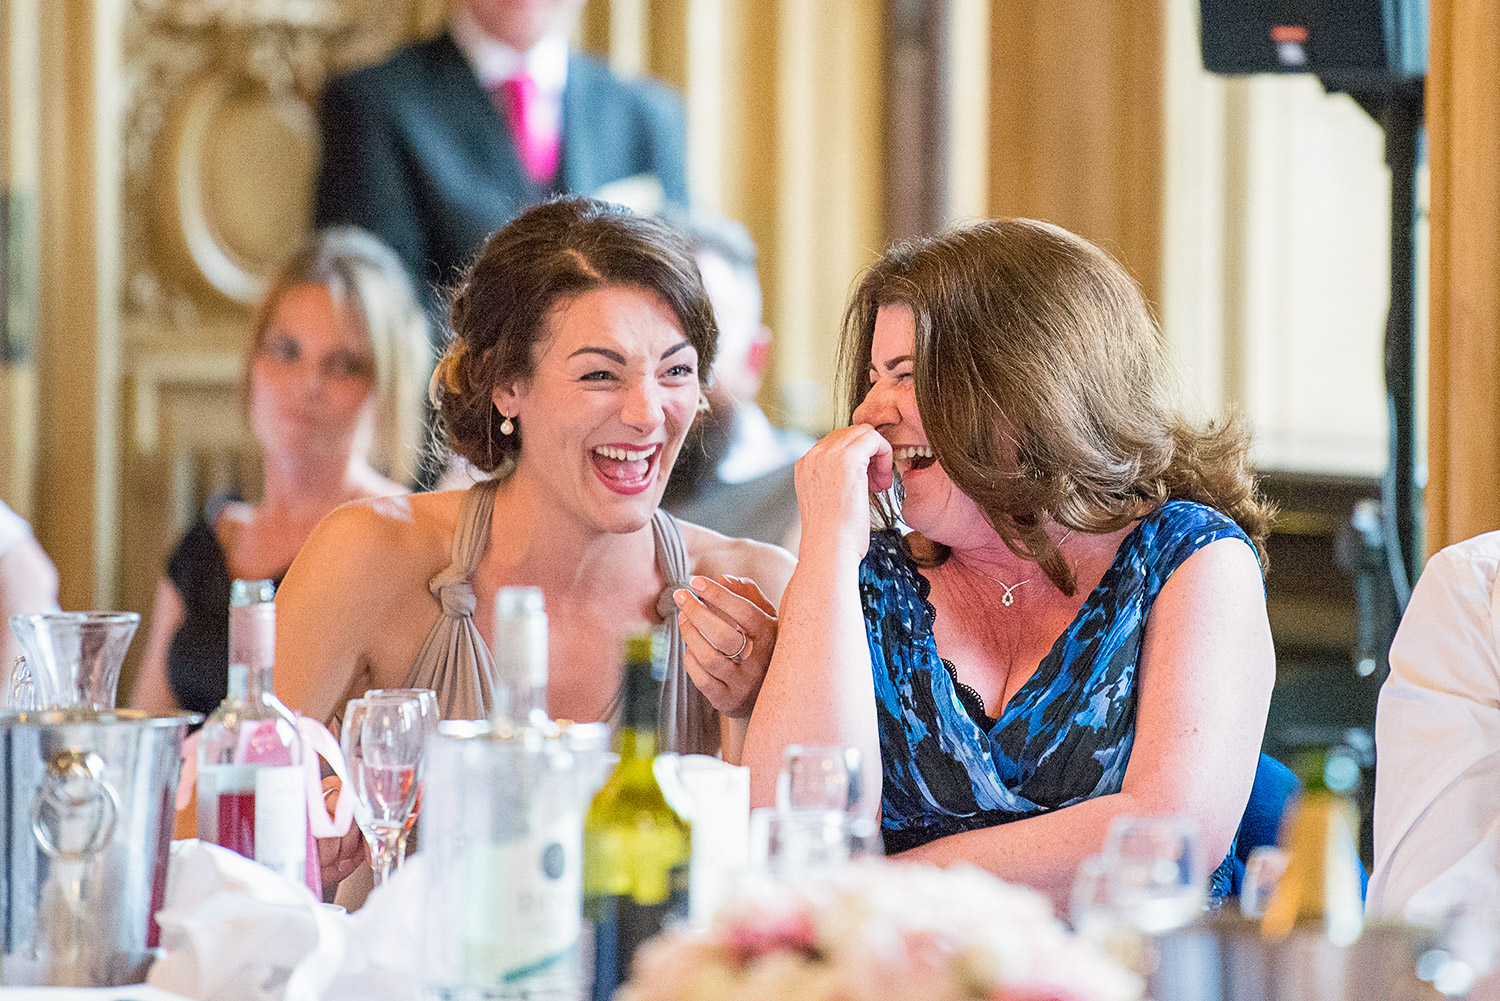 Copy of wedding guest laughing at best man's speech